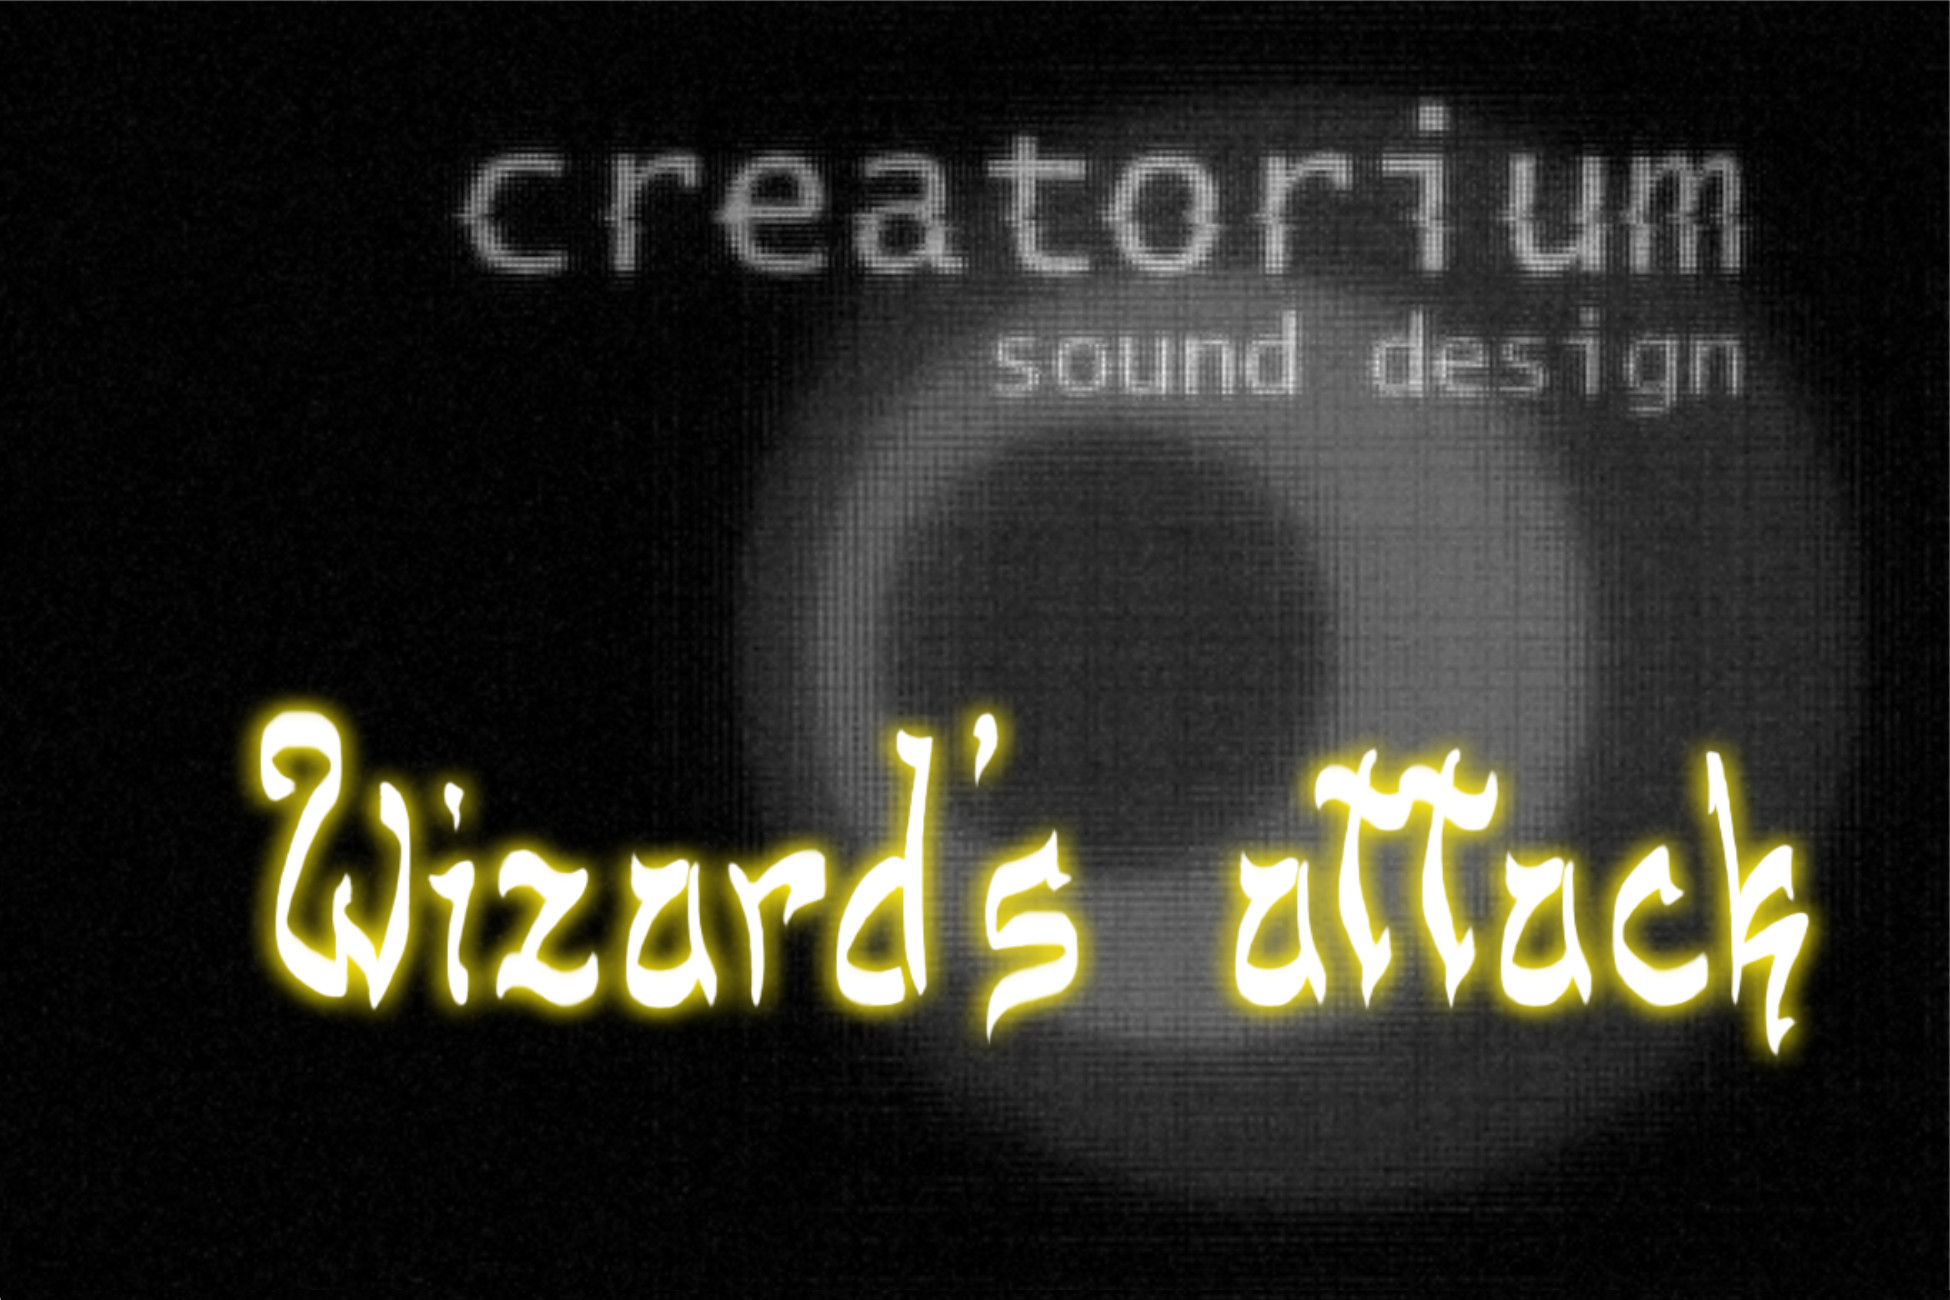 Wizard's attack 04